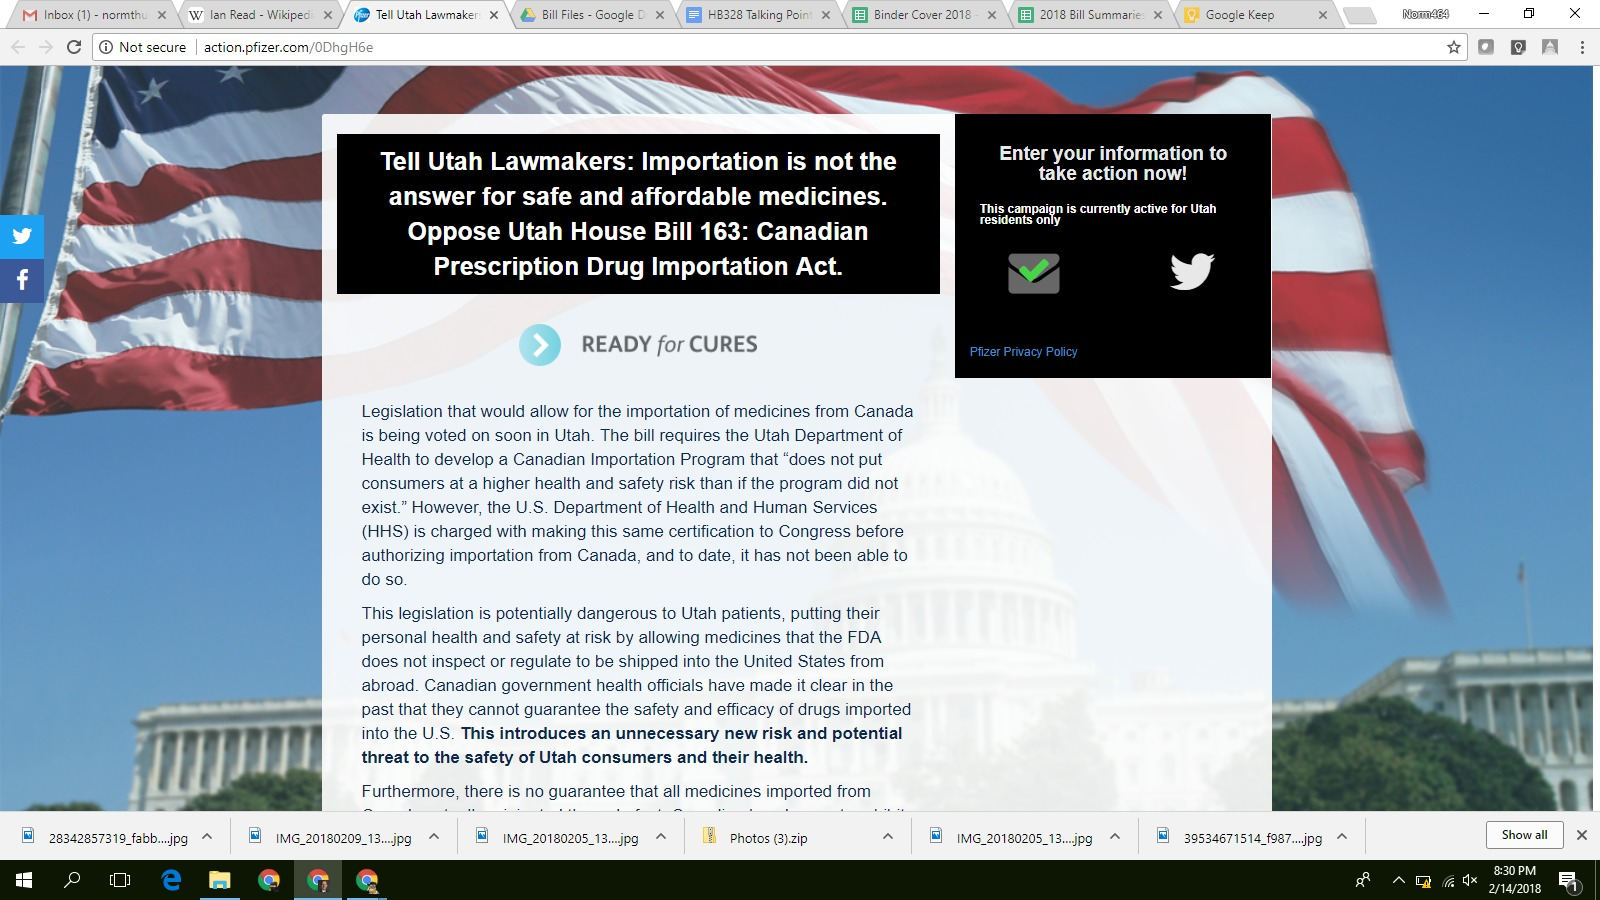 A screenshot of the political action page on Pfizer's website speaking against HB163, which would allow drugs to be imported from Canada.